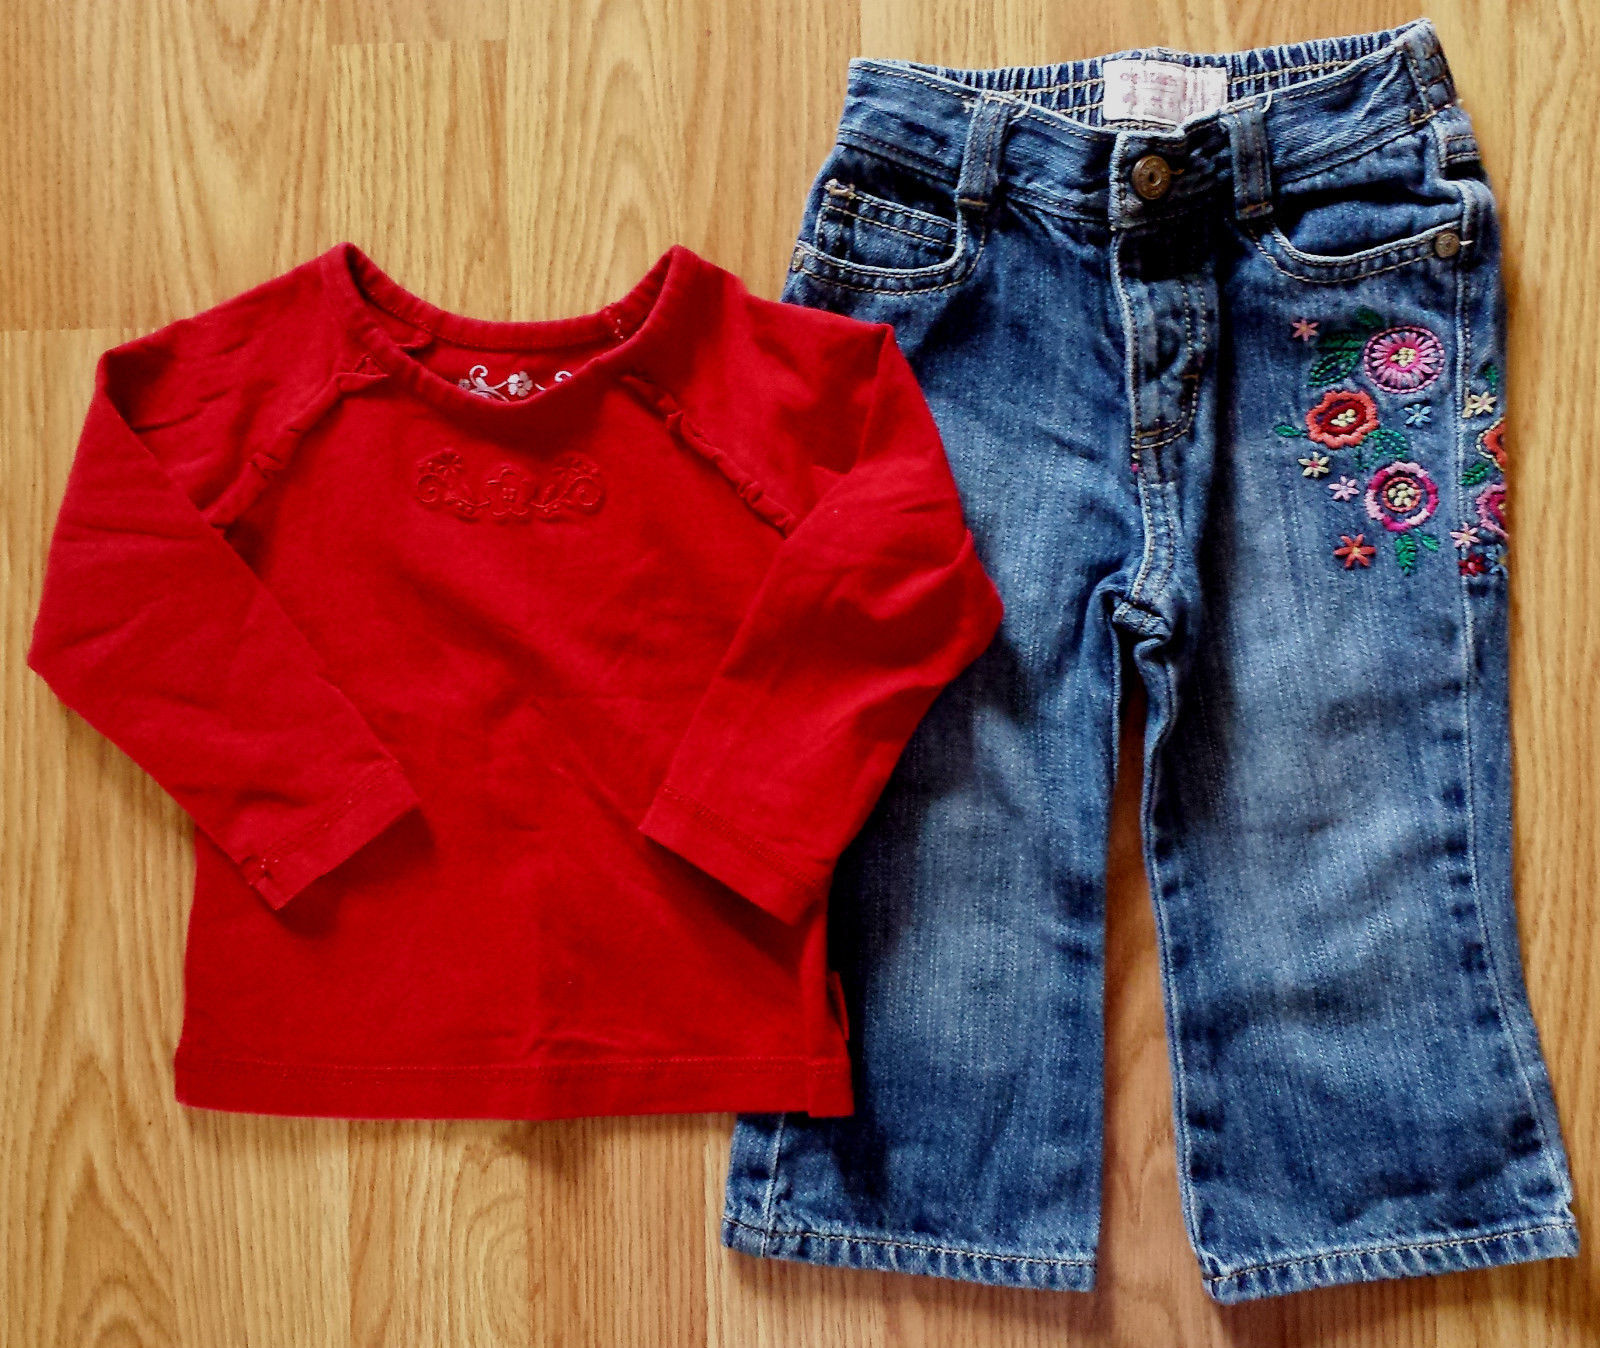 Girl's Size 18 M Months Two Piece Red Floral Place LS Top & Denim Osh Kosh Jeans